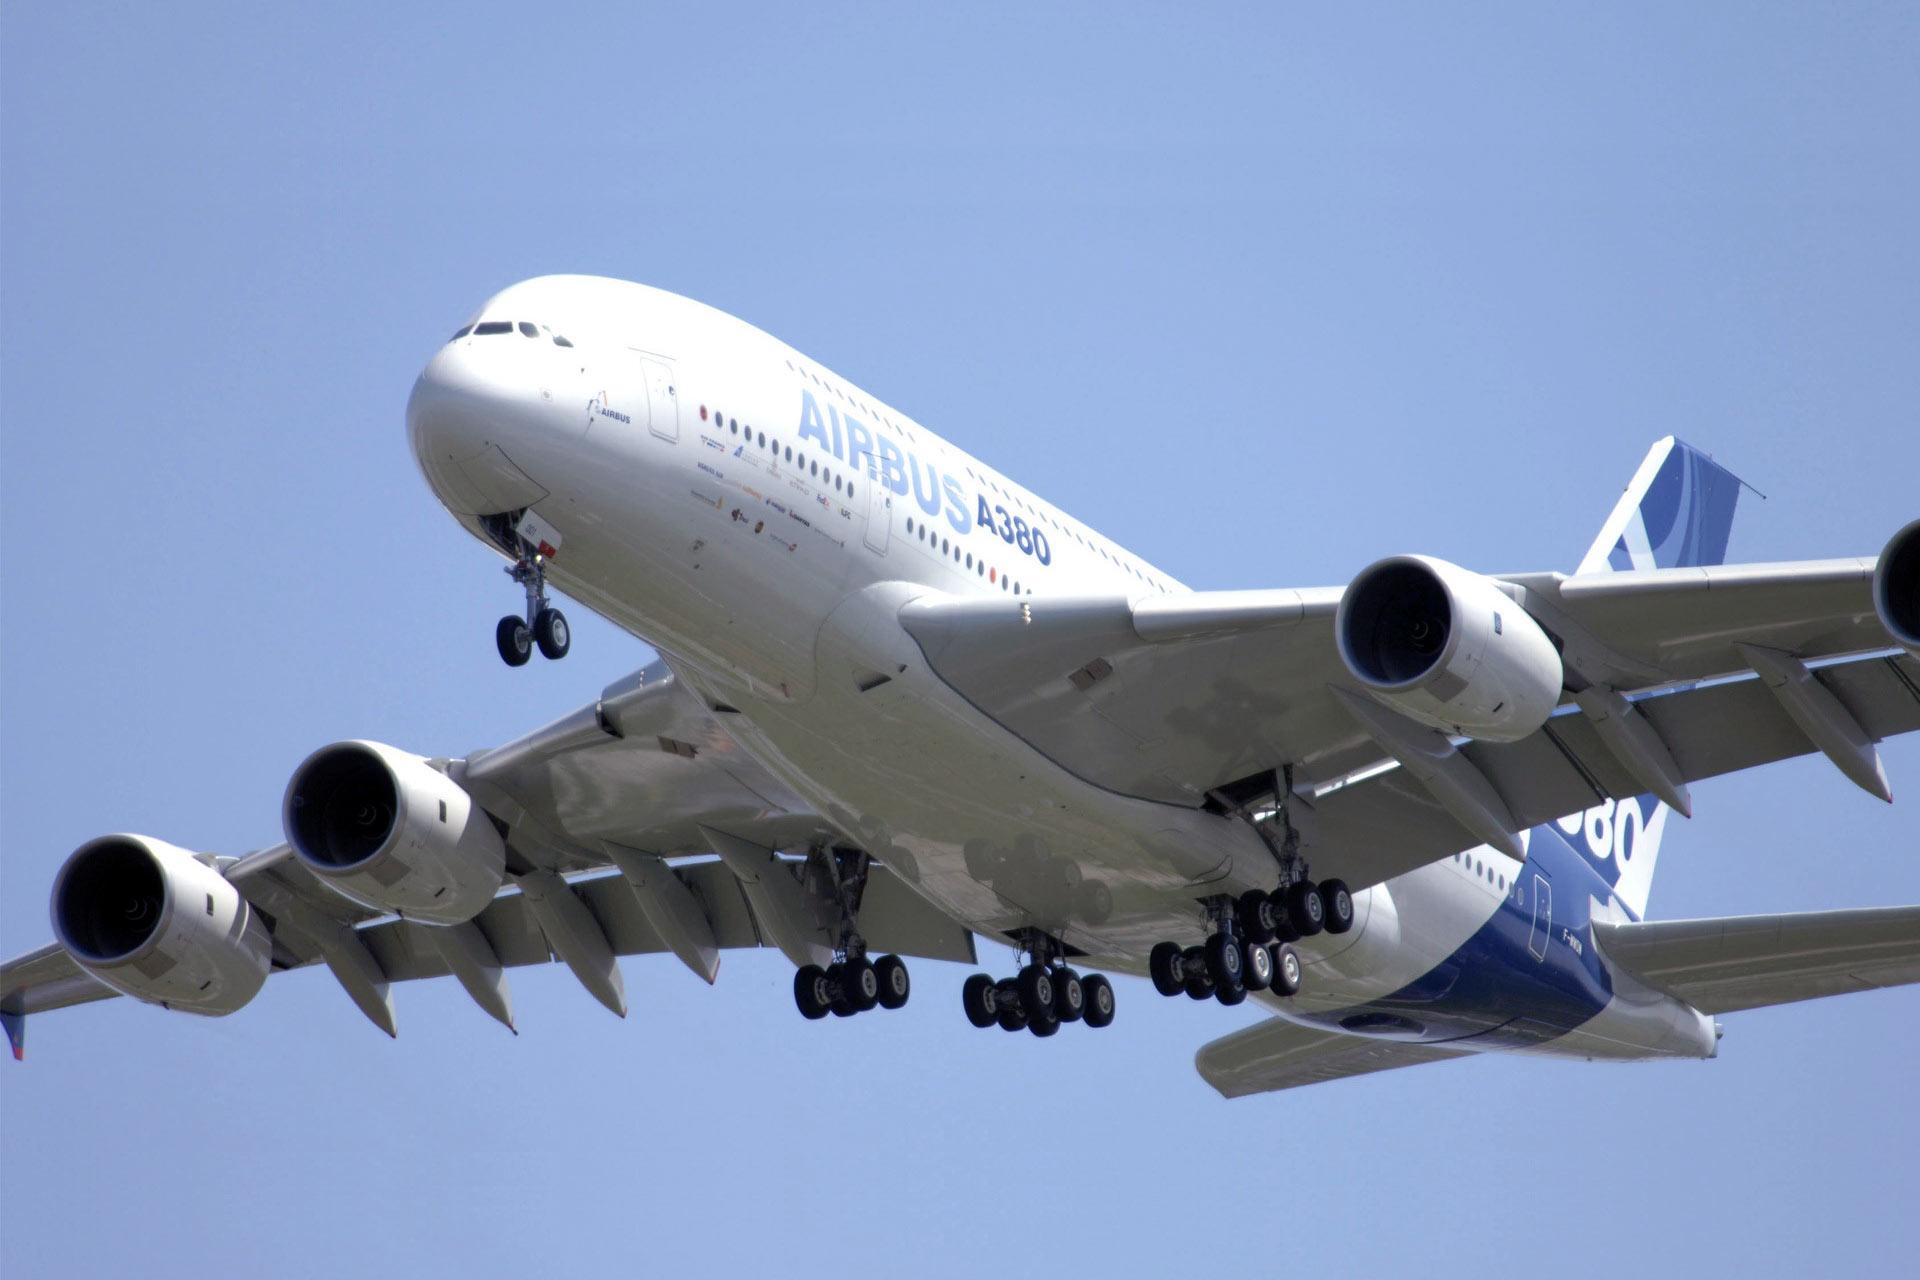 Airbus A380 - Edelstahl Rosswag delivers components for the landing flaps